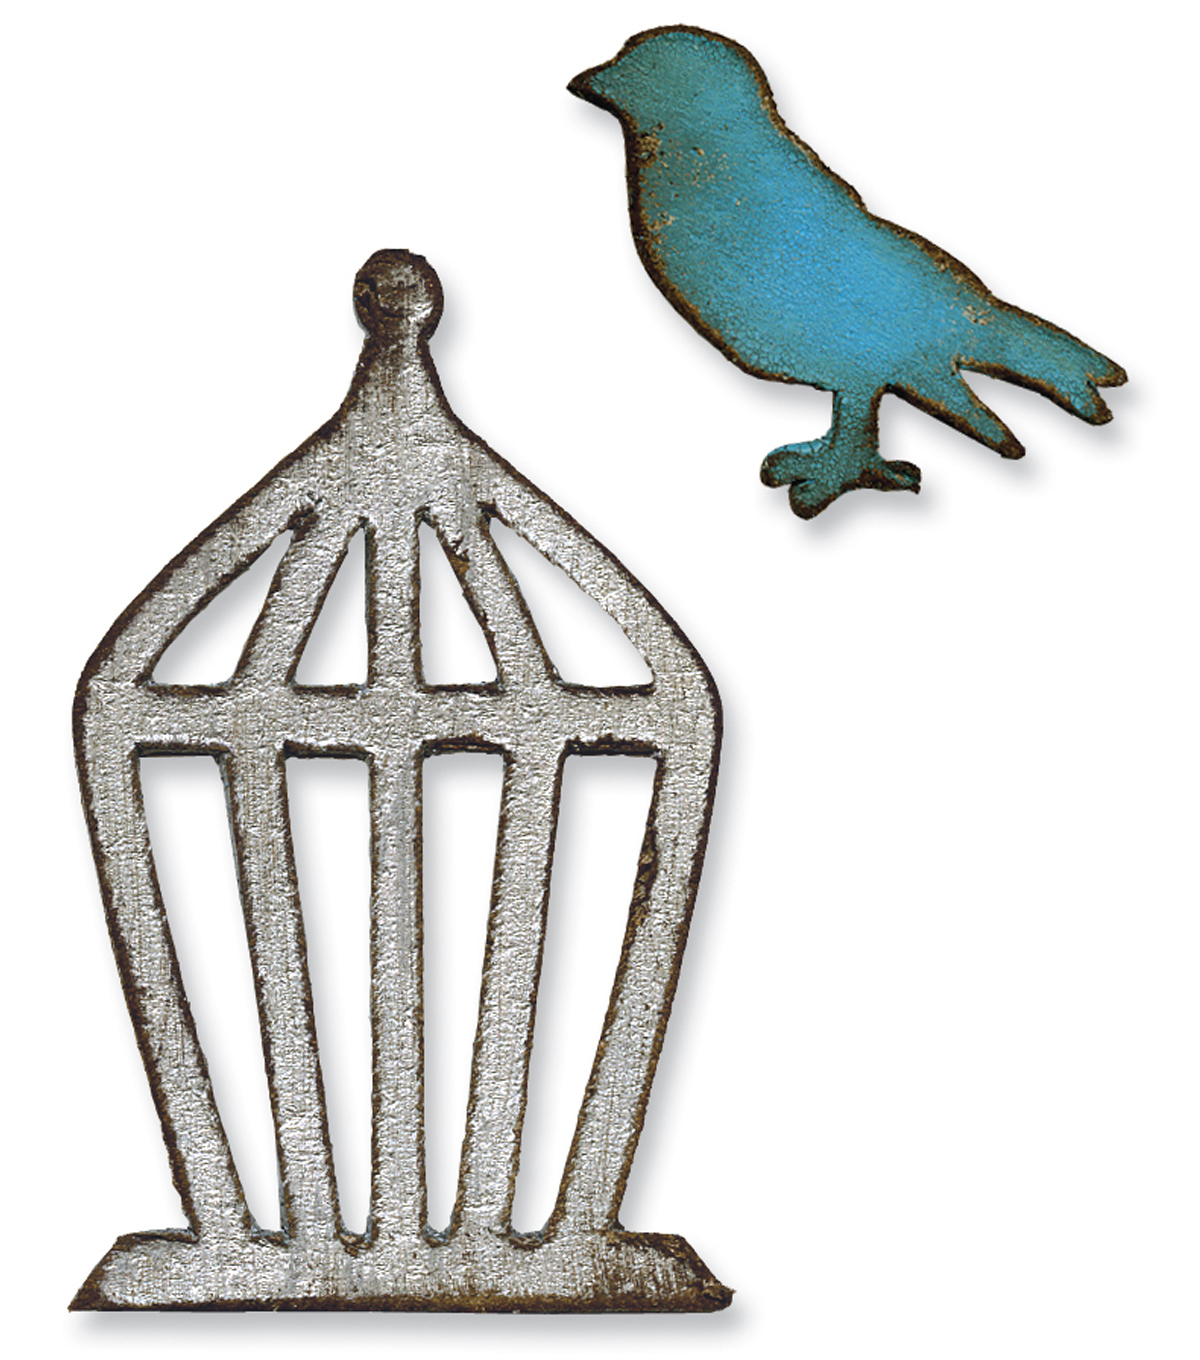 Sizzix Movers & Shapers Magnetic Die Bird & Cage